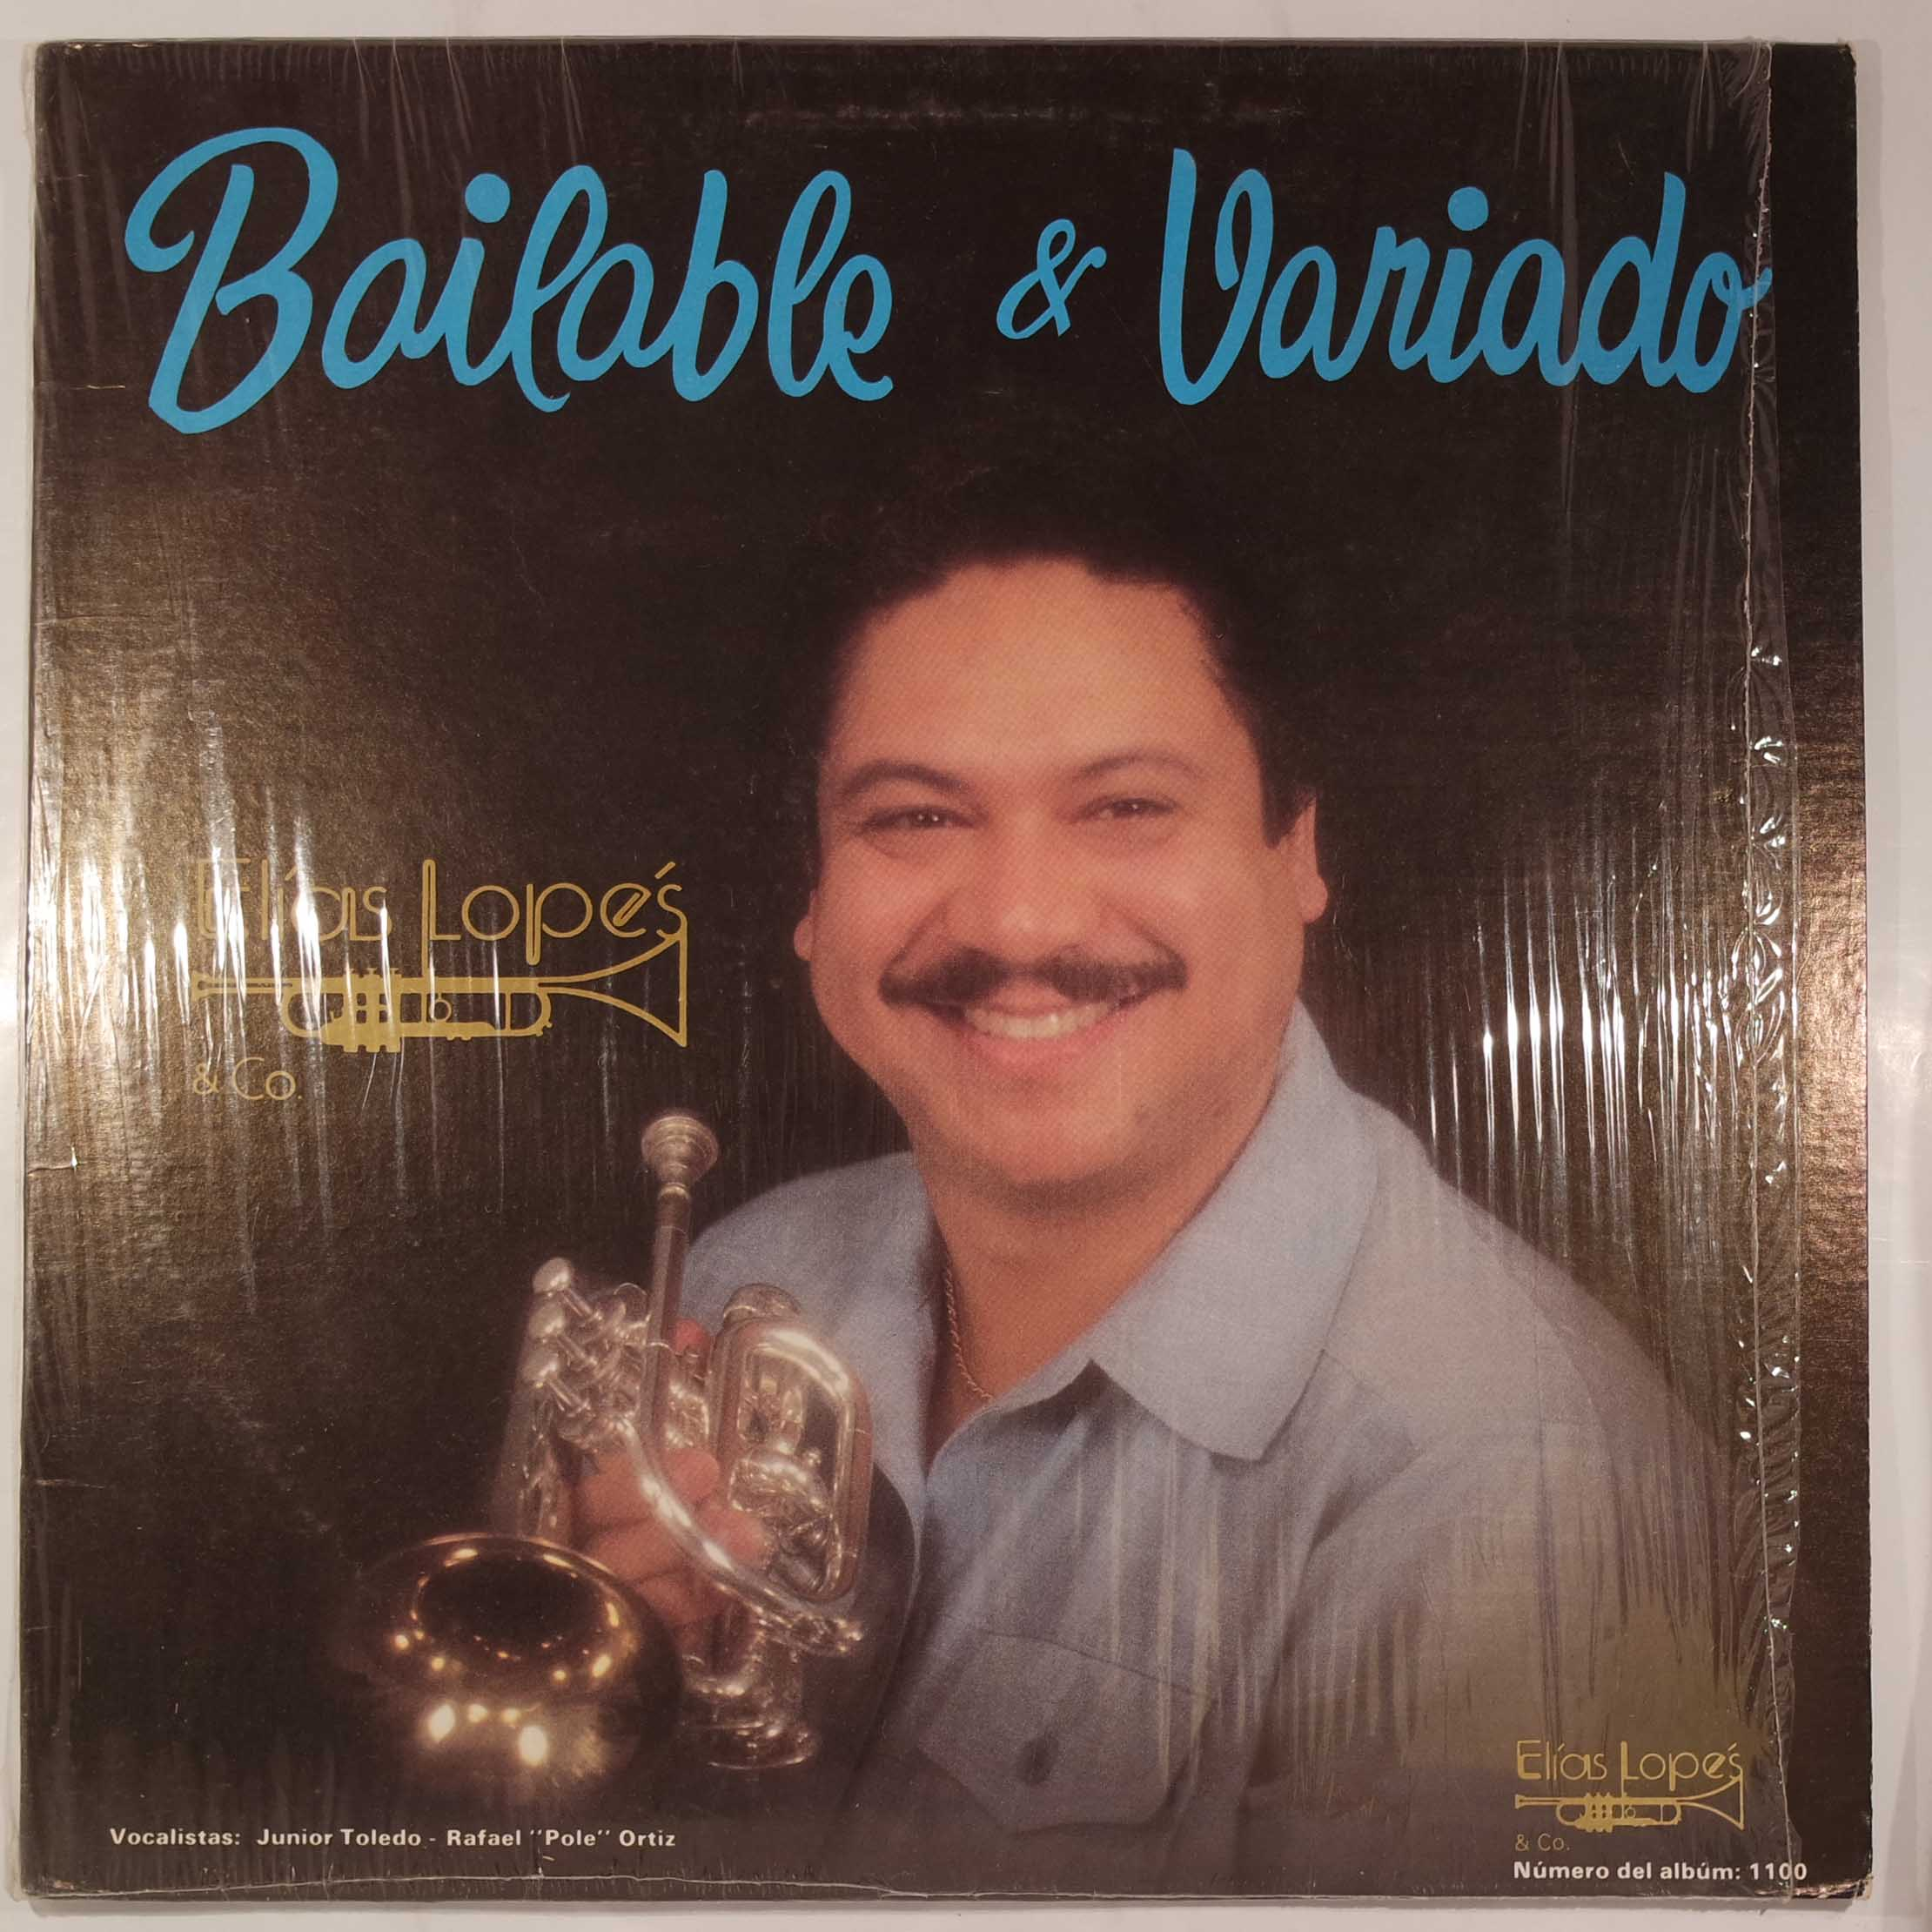 ELIAS LOPES & CO - Bailable & Variado - LP